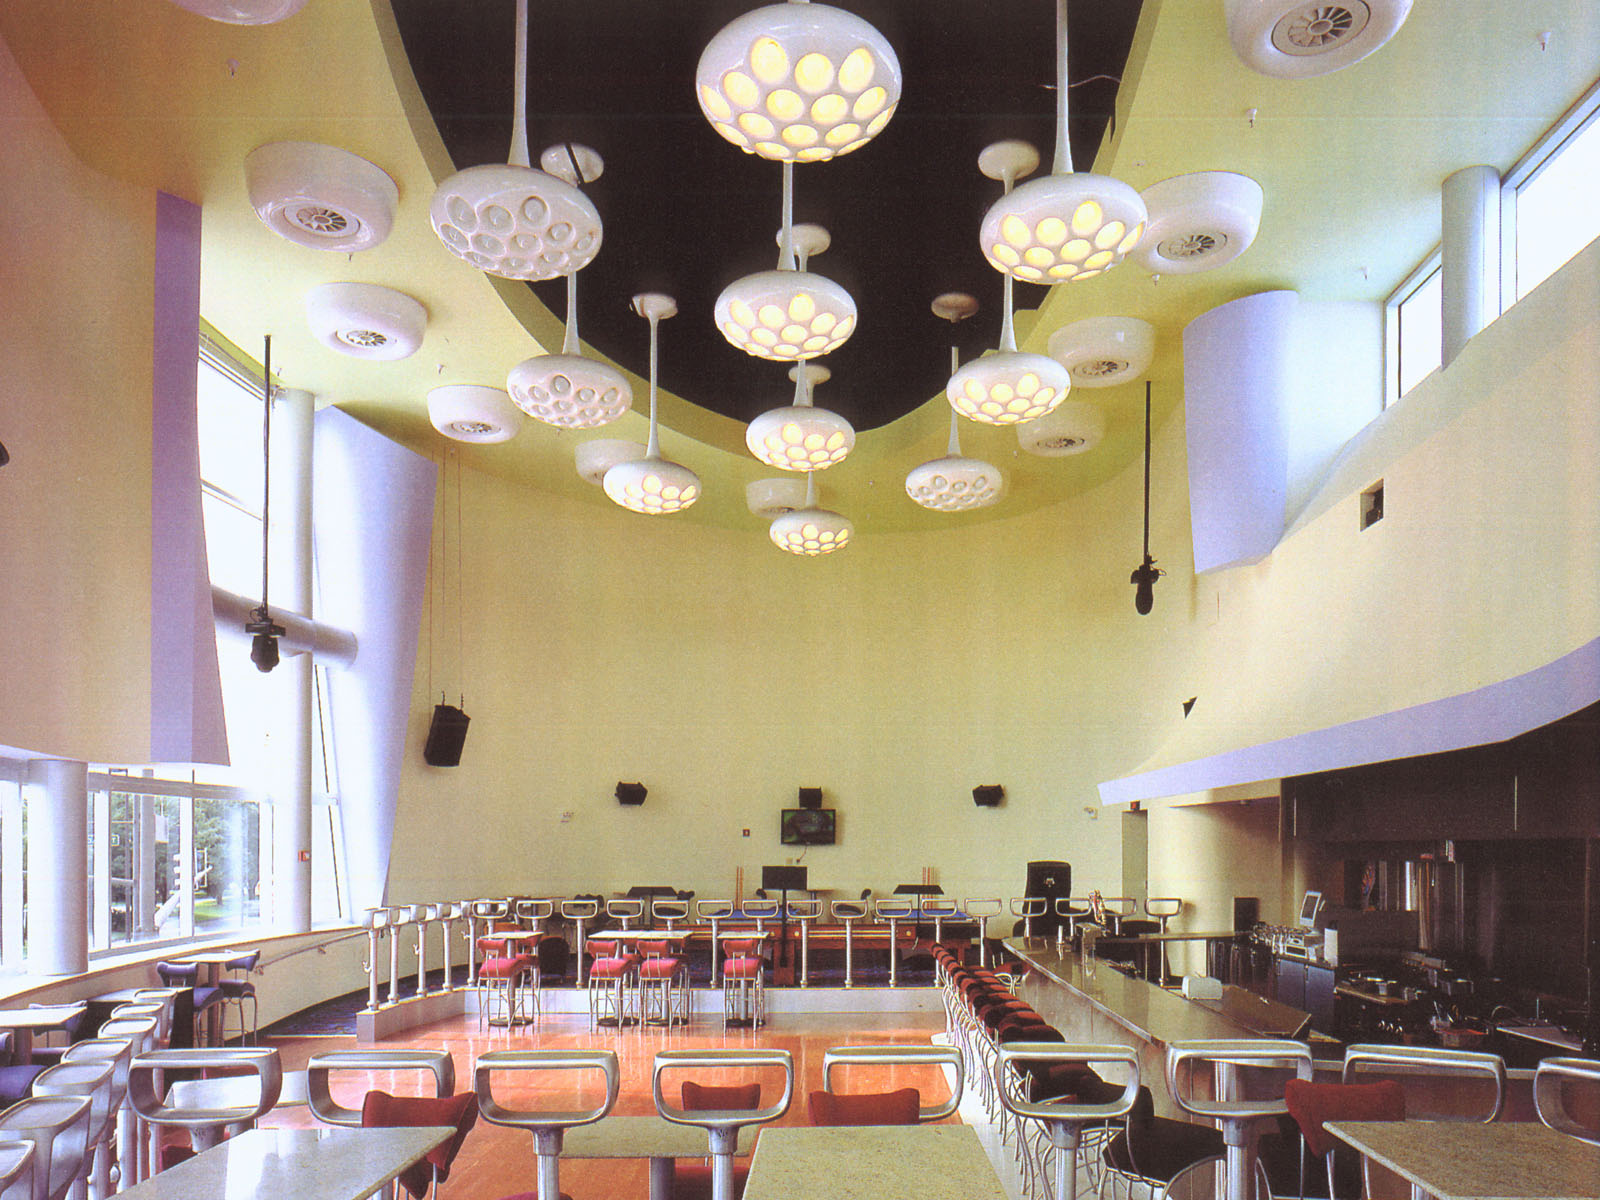 XS Rotunda interior.jpg